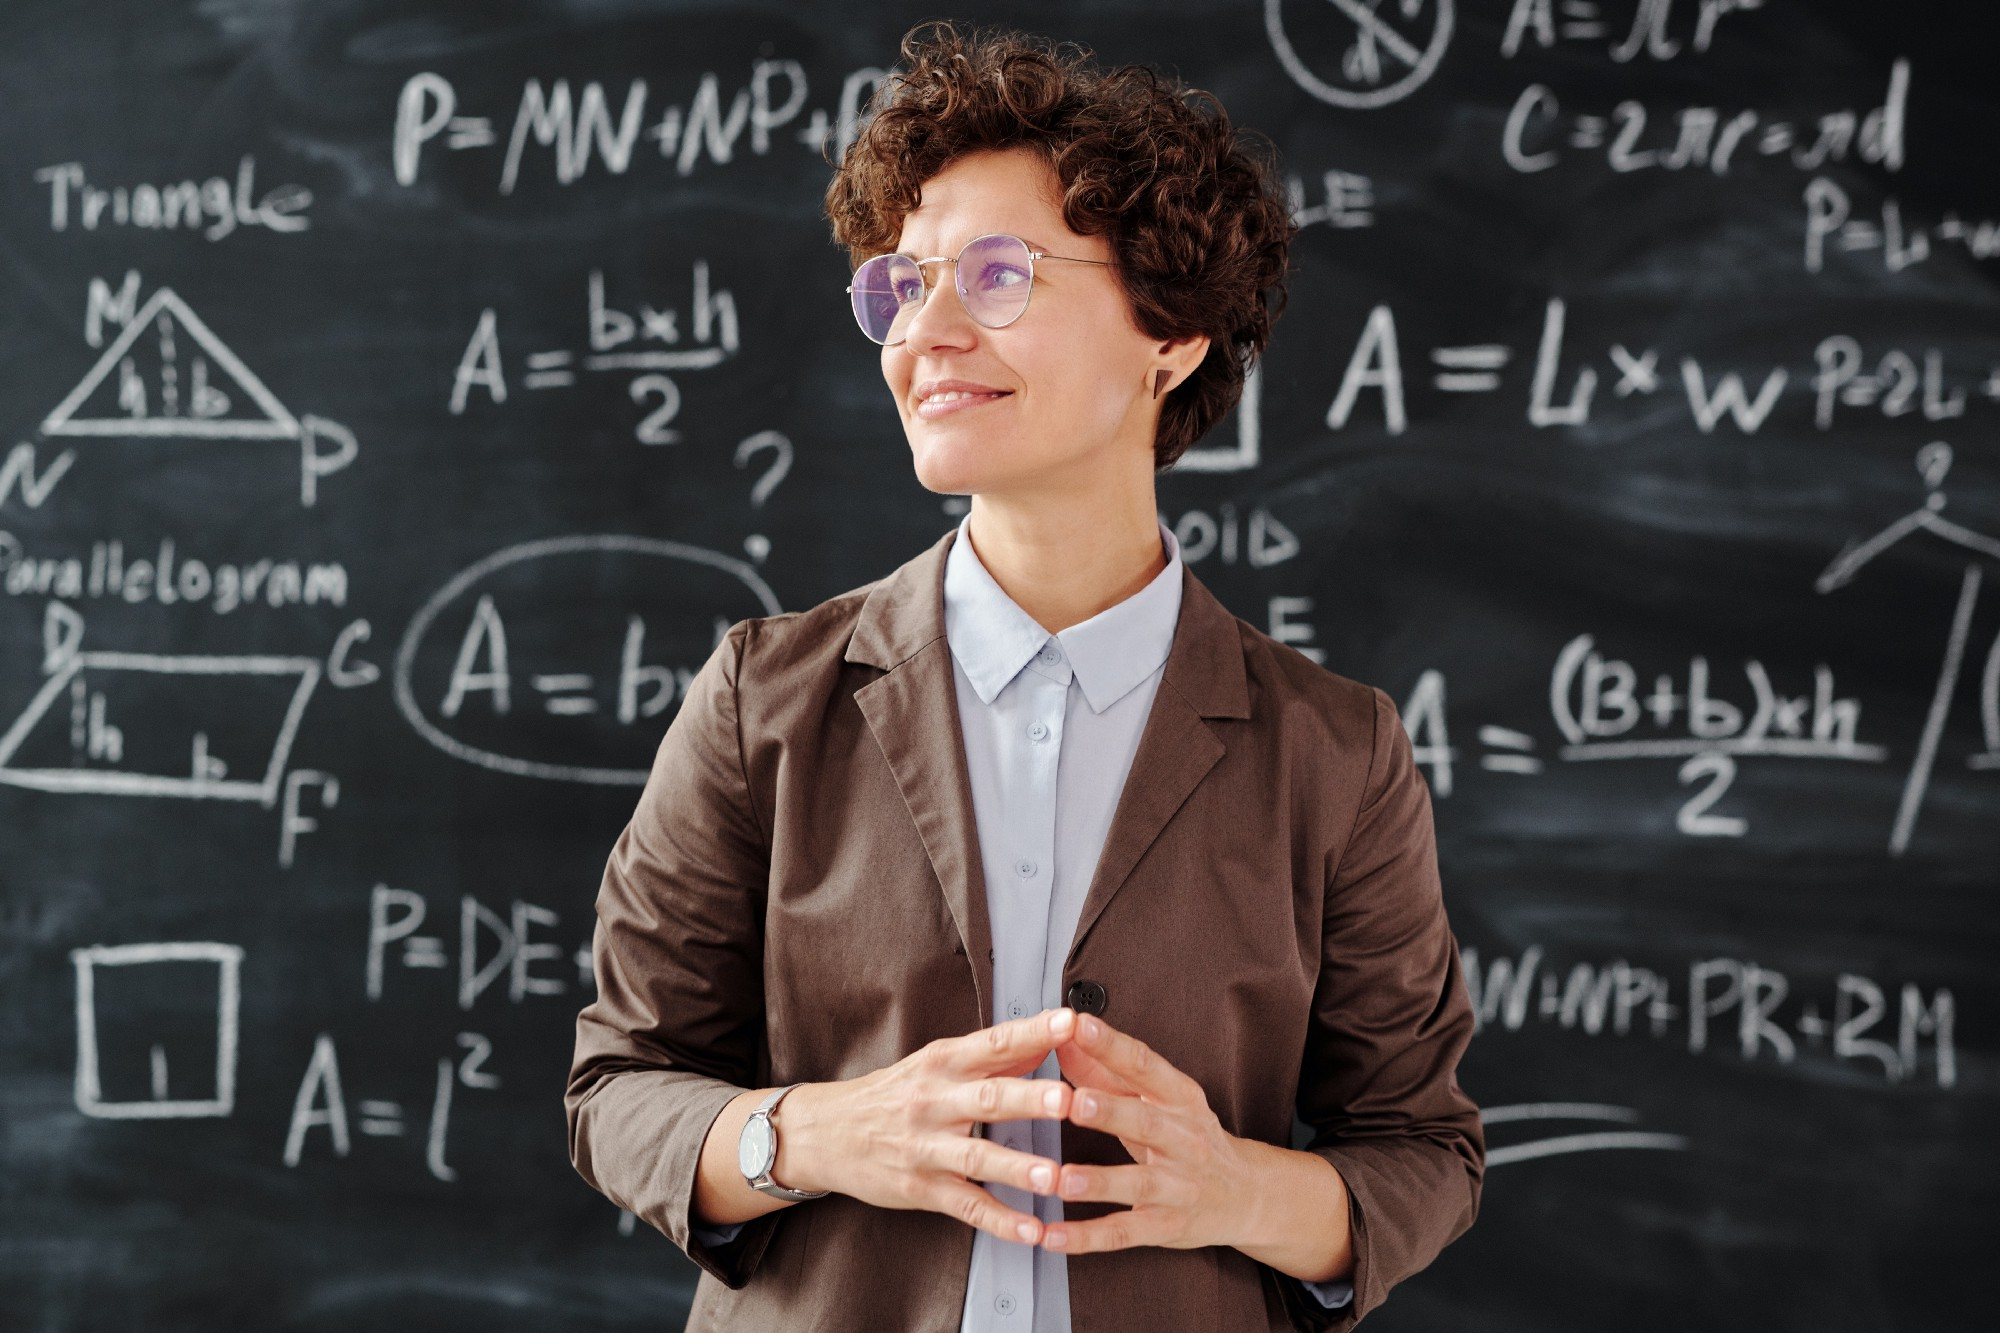 woman in brown blazer wearing sunglasses in front of a blackboard full of mathematical formulas